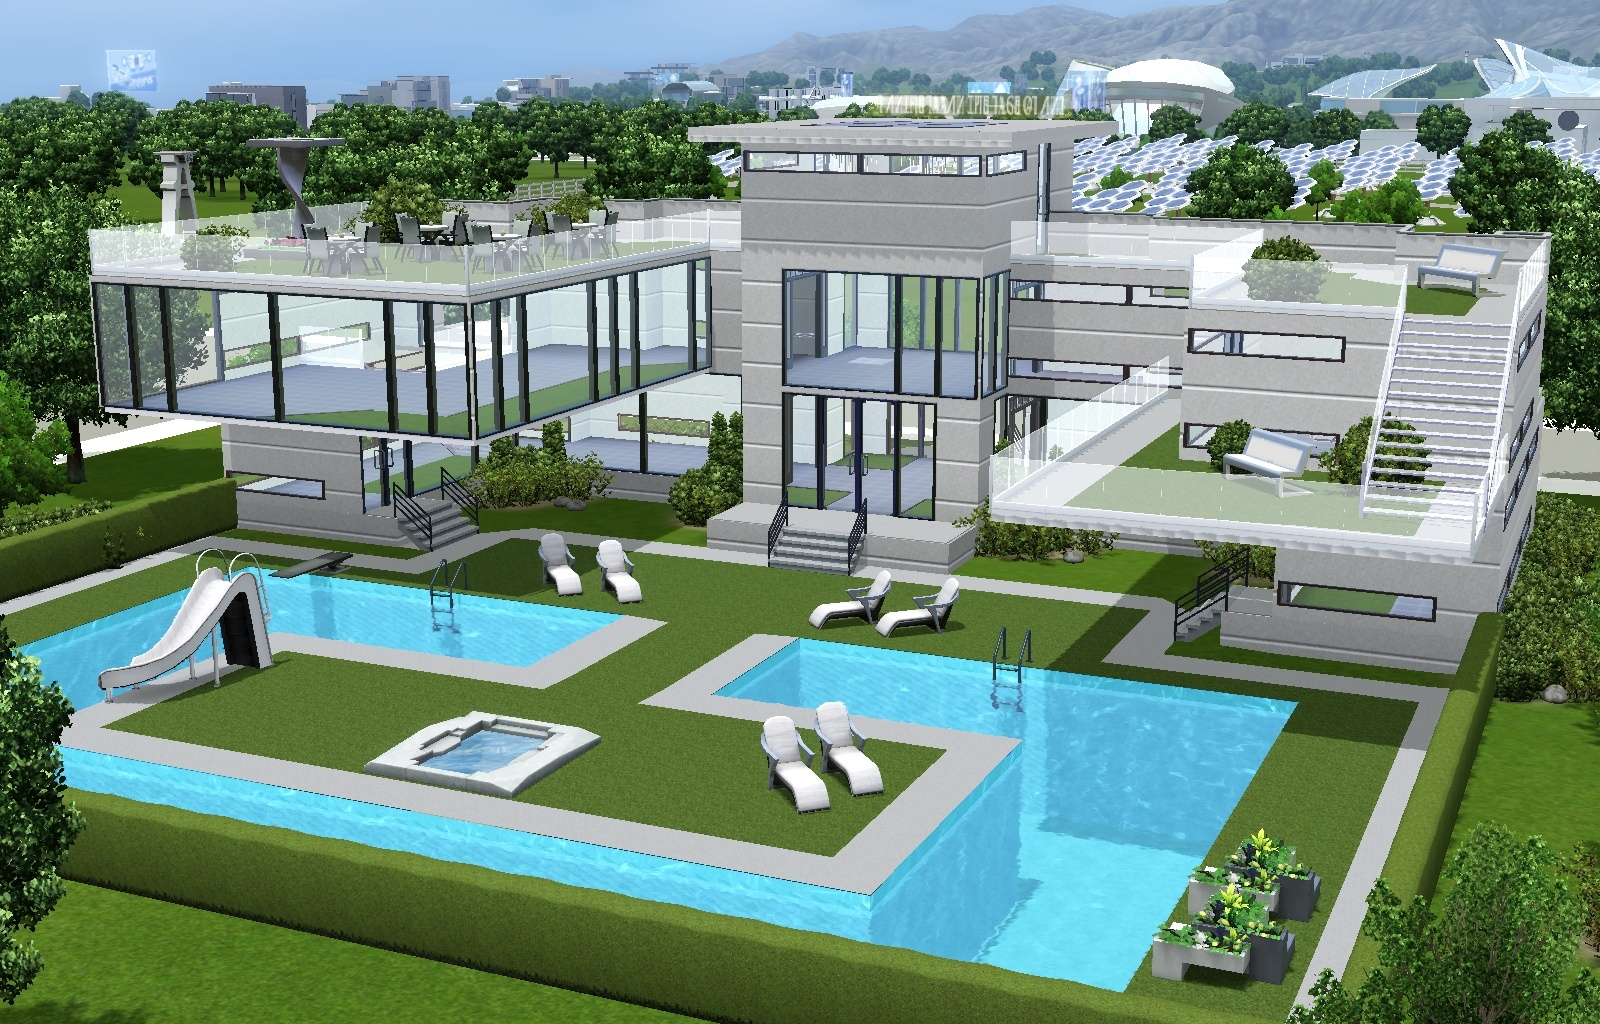 Mod the sims wavera pool and cafe pool for oasis landing for Pool design sims 3